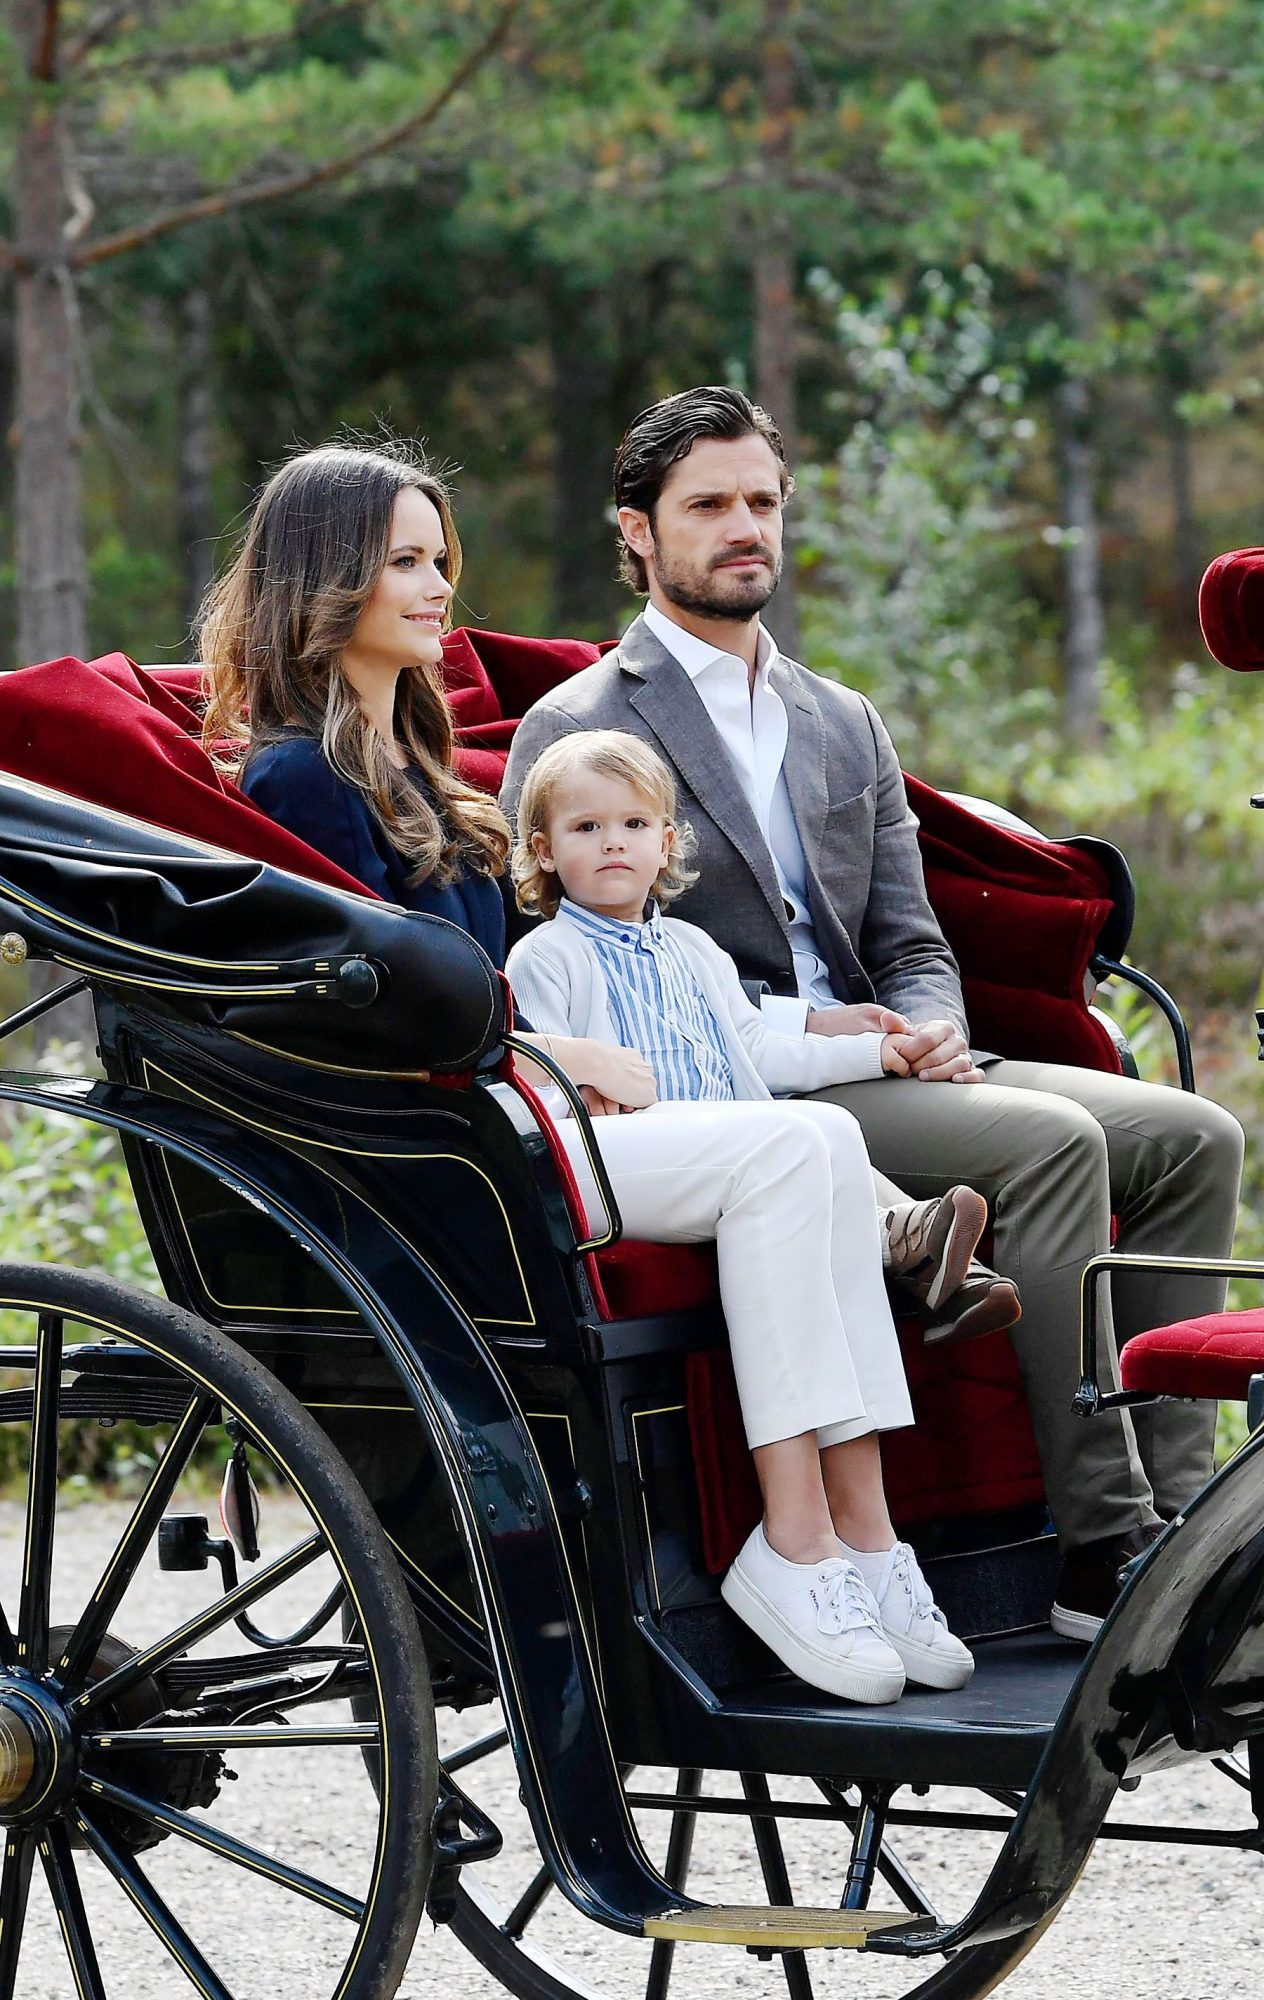 Princess Sofia of sweden and Prince Carl Philip visit the Nynas Nature Reserve, Sodermanland, Sweden - 23 Aug 2018